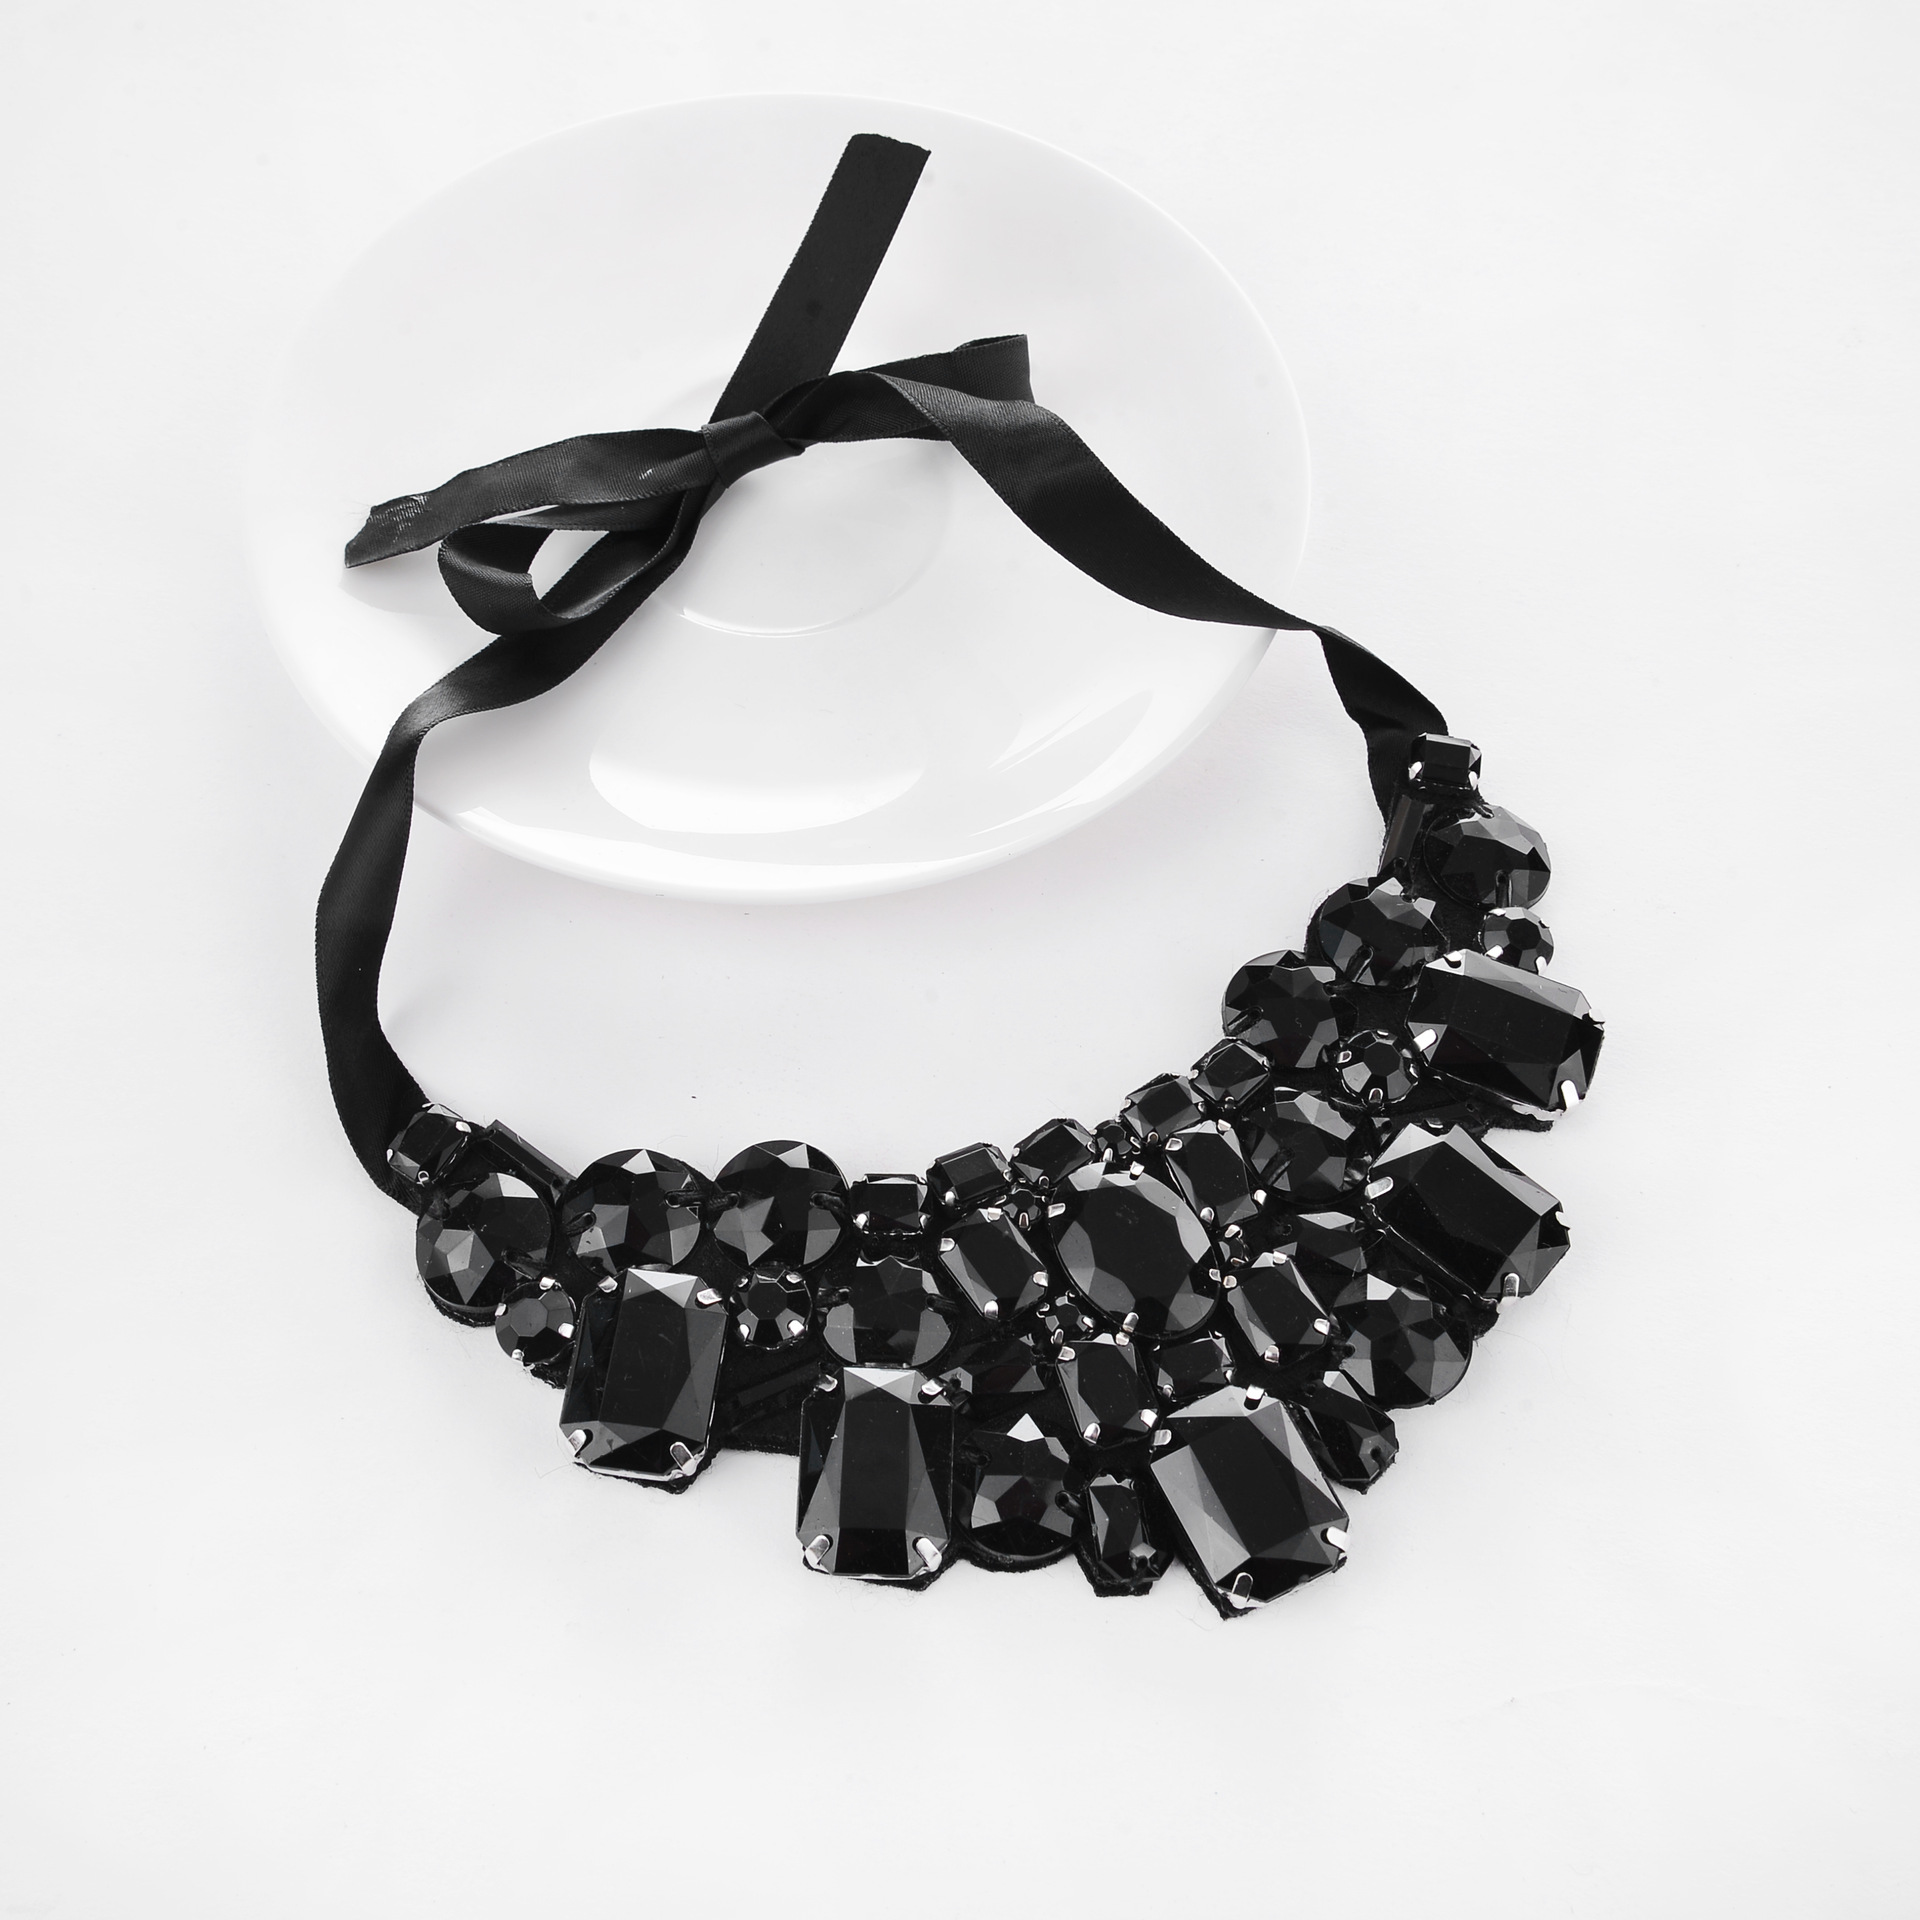 YMN-06087 korea style muti color stones ribbon  collar necklace Yiwu Jewelry Factory Fashion Accessories Manufacture Fashion Jewelry Supplier.